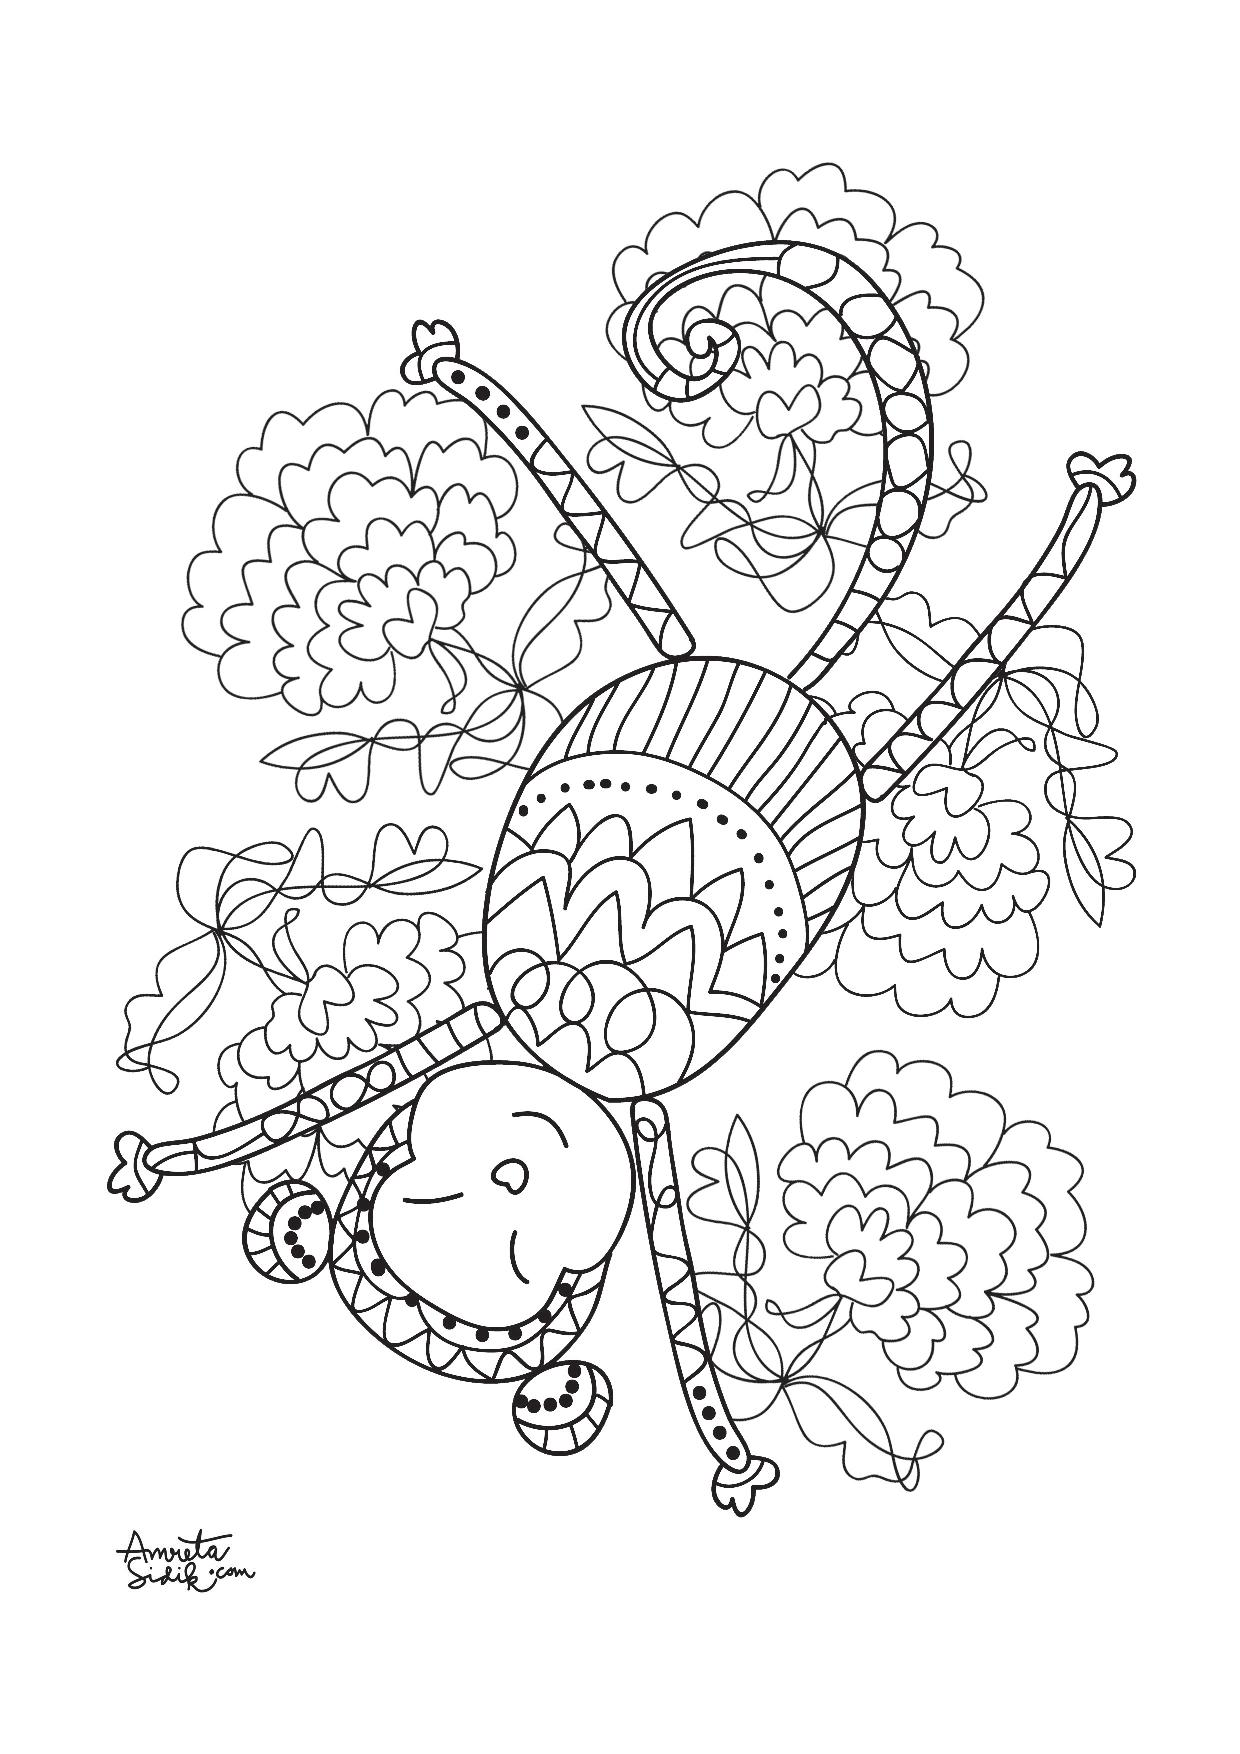 Year of the monkey 5 Anti stress Adult Coloring Pages